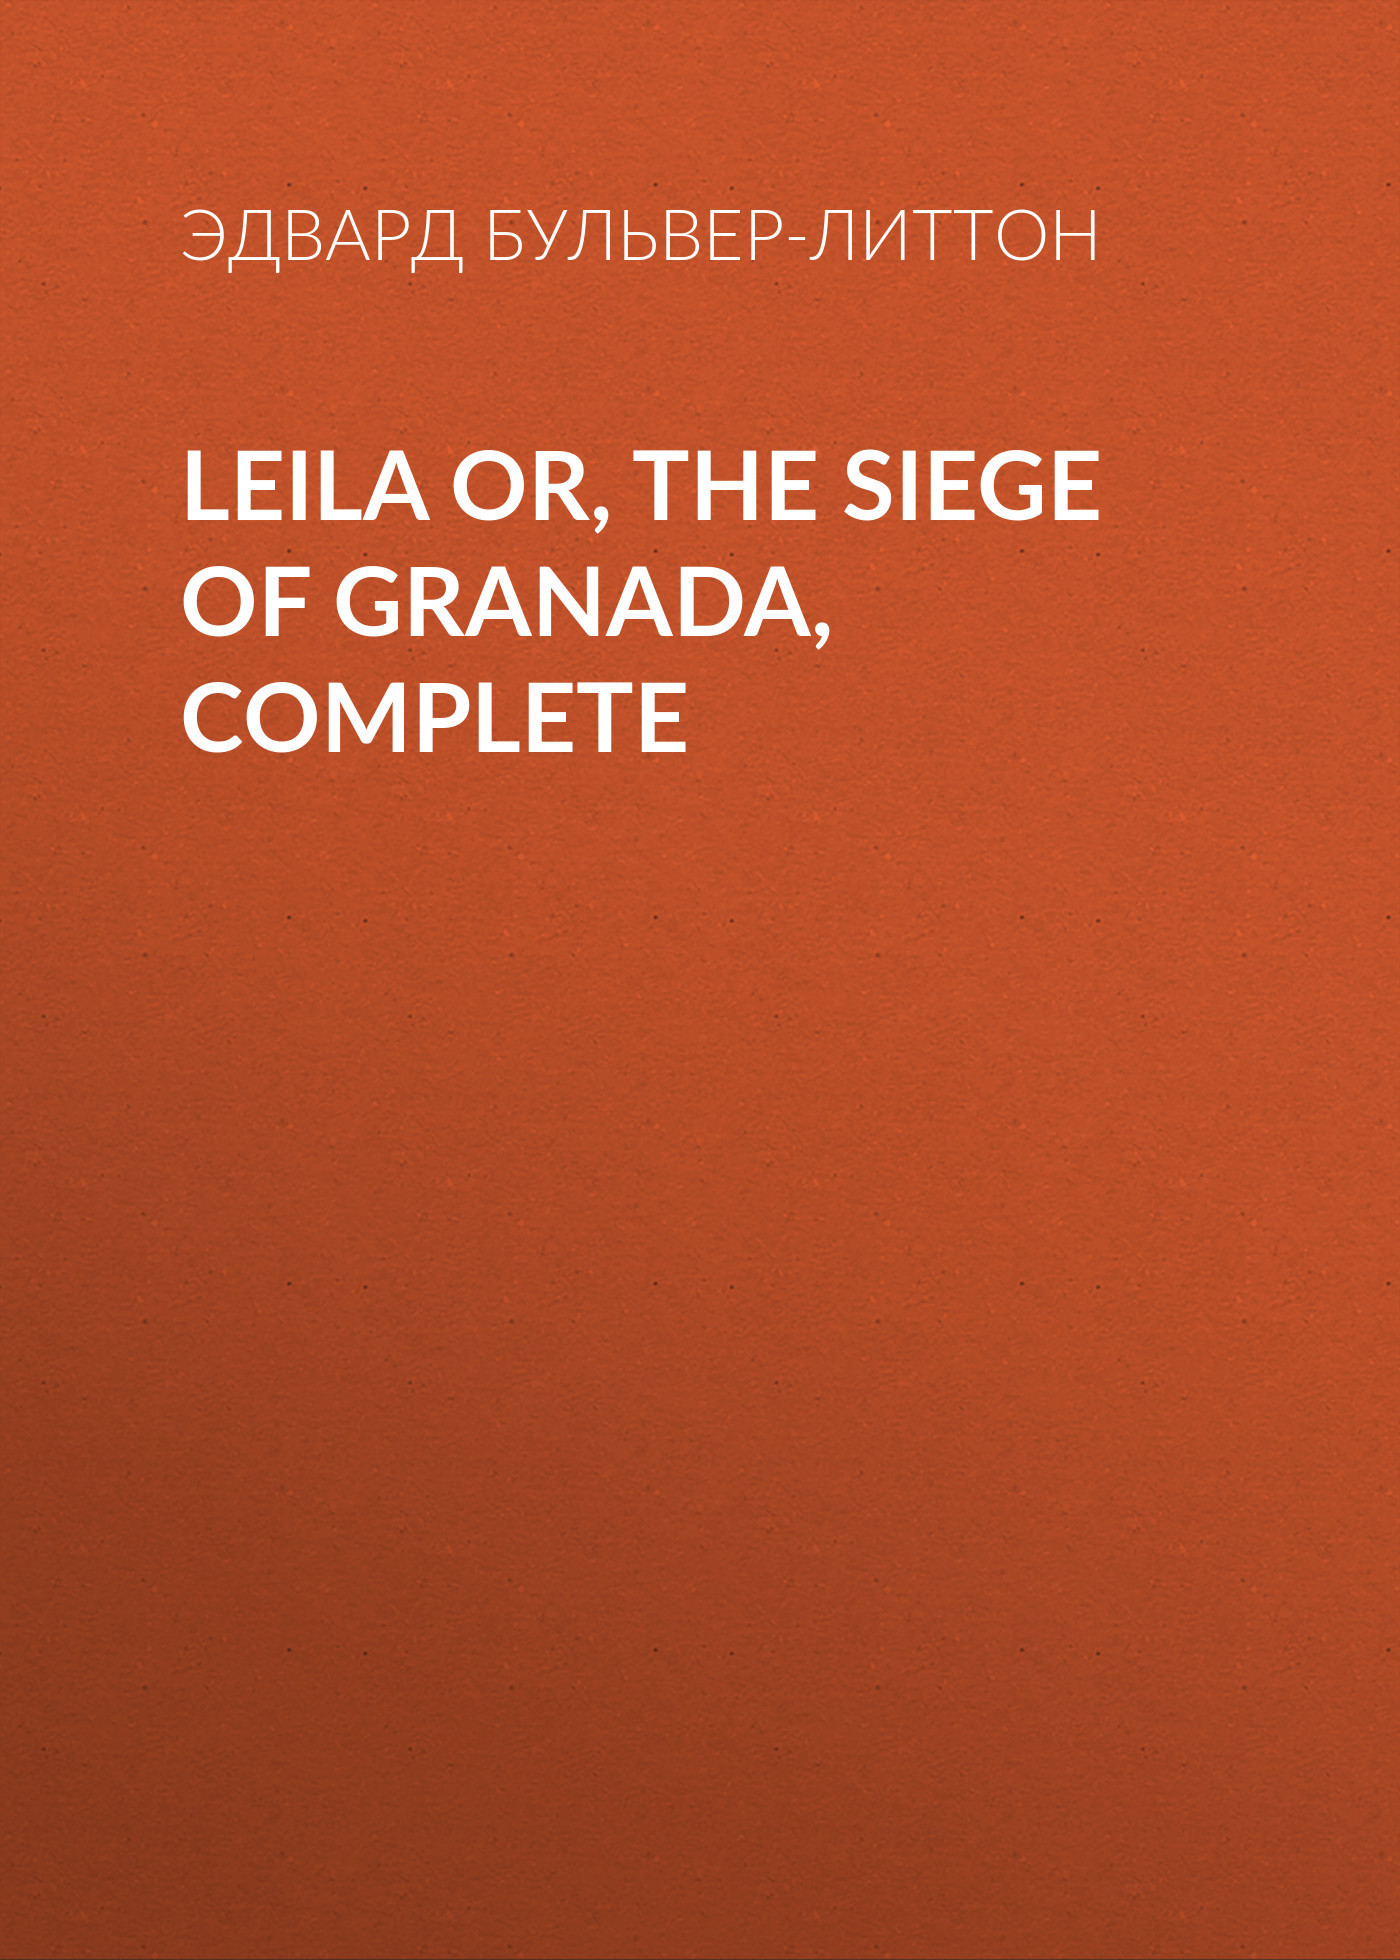 Эдвард Бульвер-Литтон Leila or, the Siege of Granada, Complete